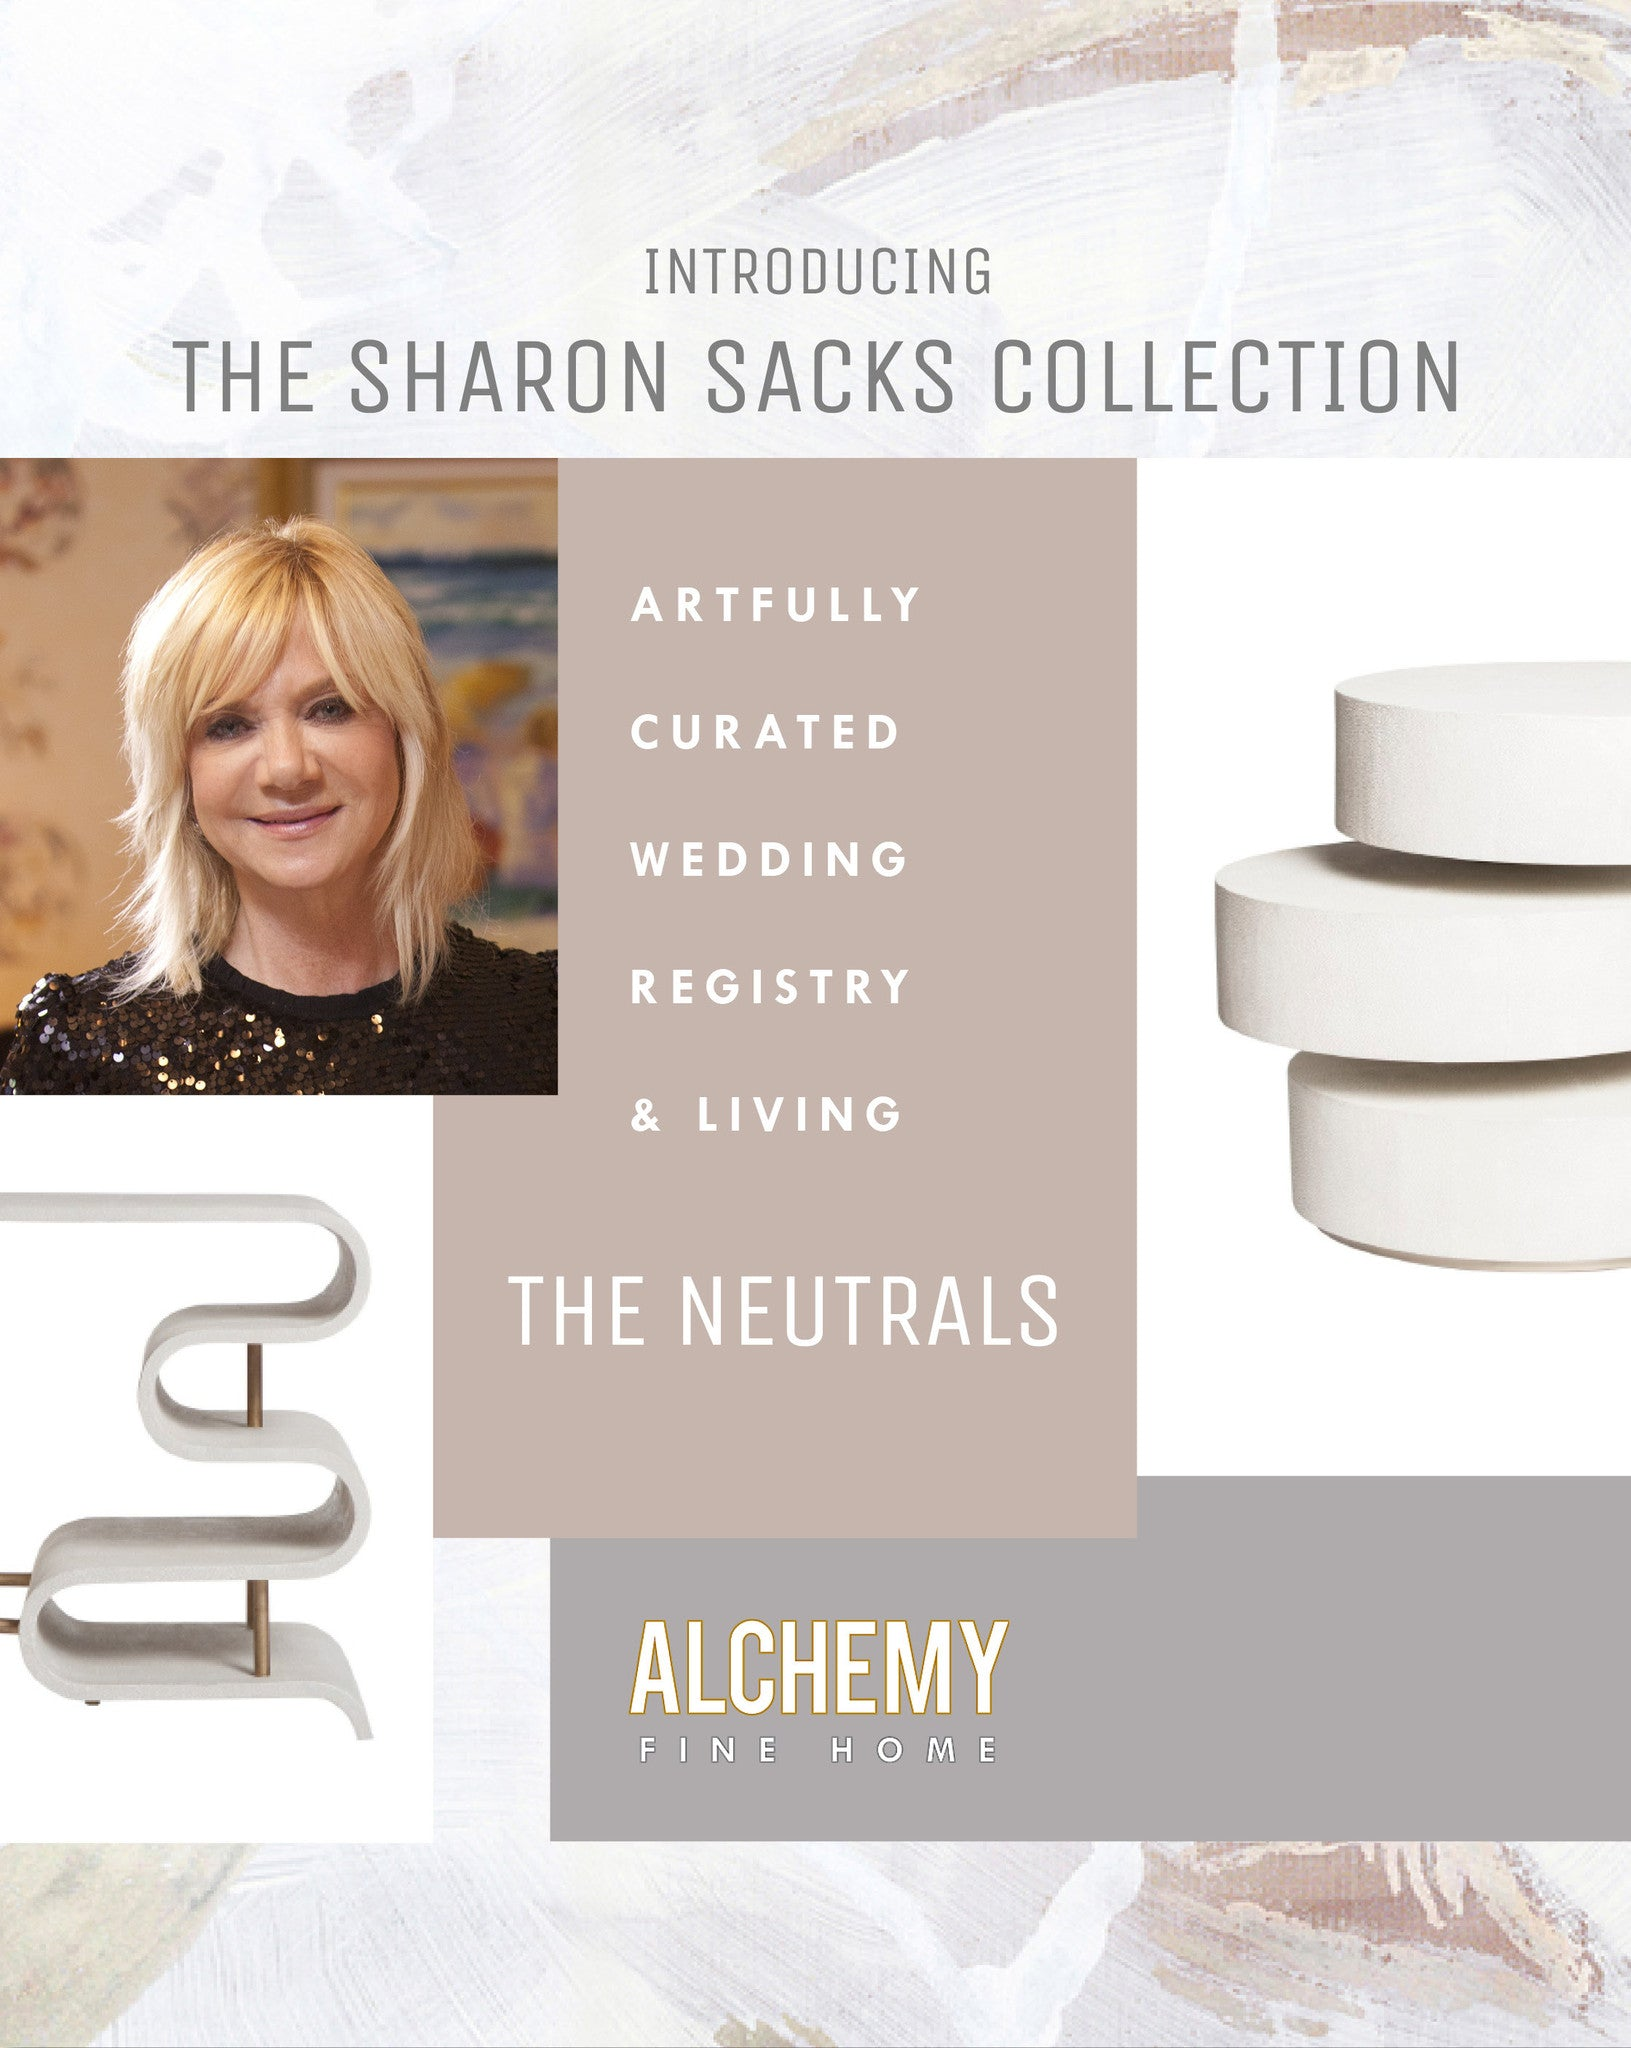 The Sharon Sacks Collection Wedding Registry